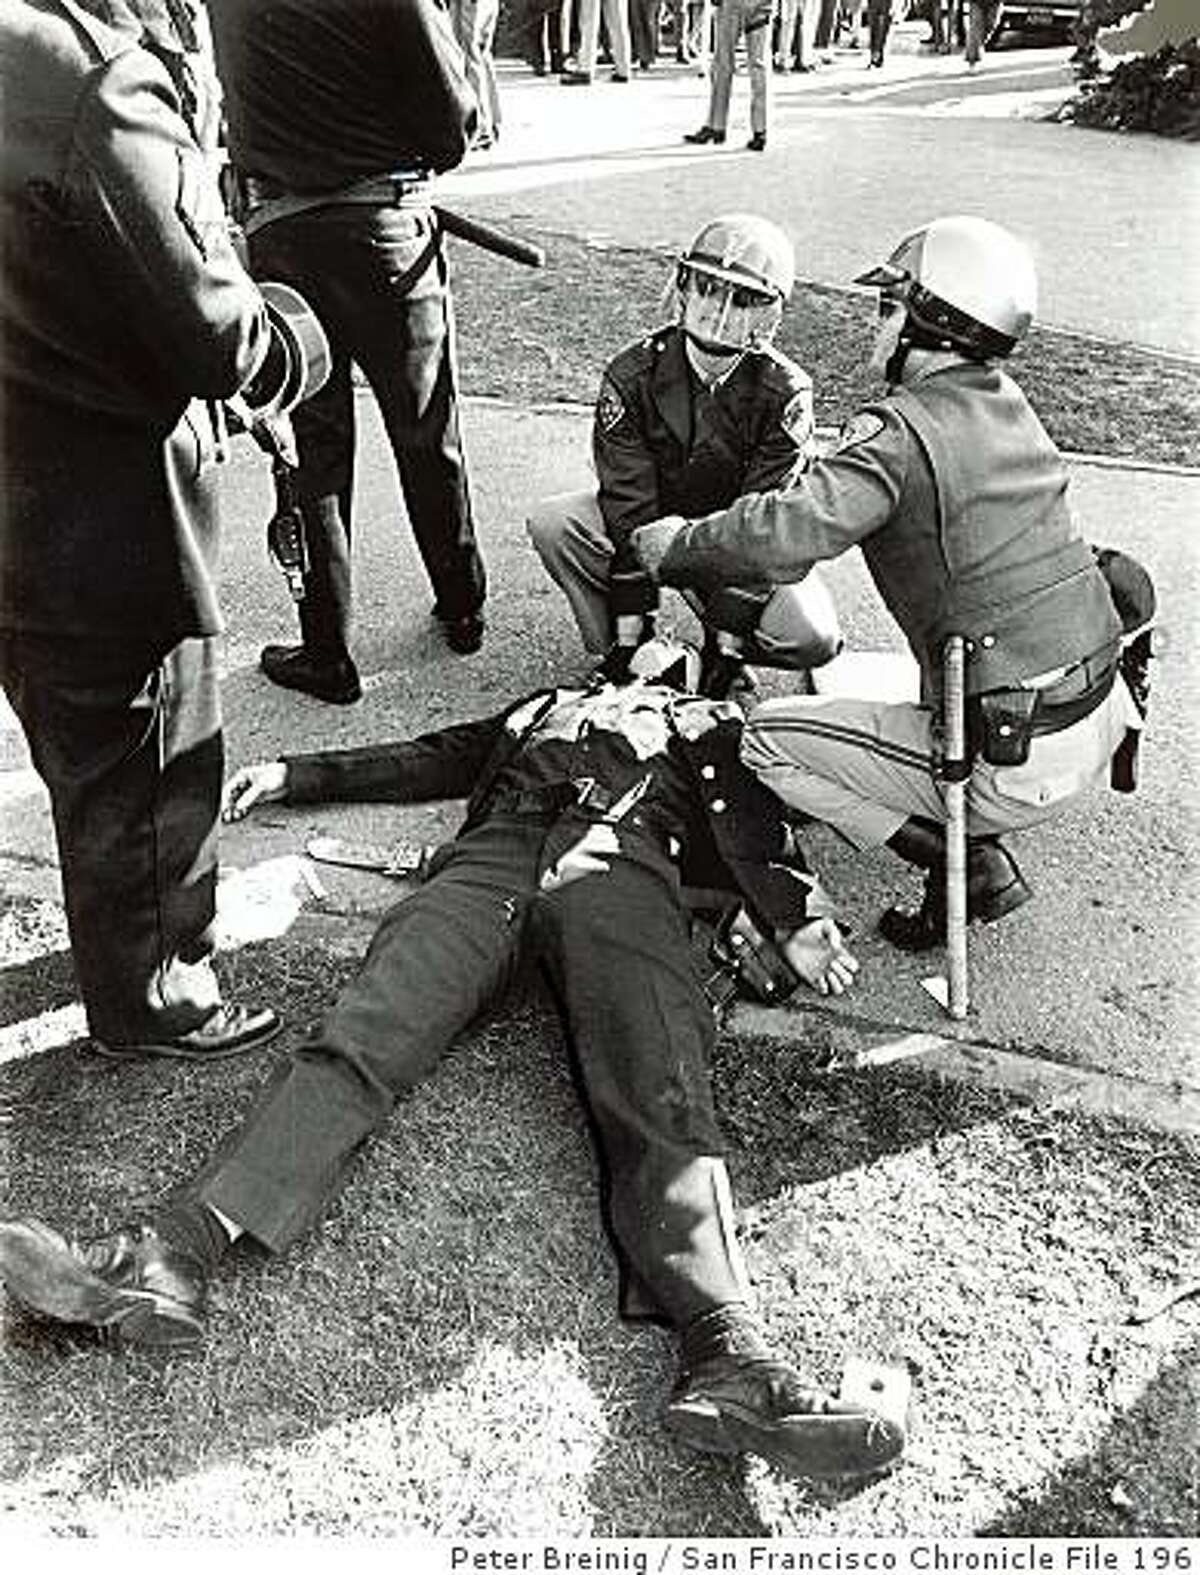 mr02_ph2.jpg December 3, 1968 - Policeman Paul Juel of the San Francisco police department lies unconscious on the San Francisco State University campus after being felled by a hunk of brick thrown during a melee between police and dissident students. He was struck on the back of the neck. Minority groups on strike at the college for a month have tried to close it down again since it was reopened for classes. The projectile is held by an SFPD officer.Peter Breinig/ San Francisco Chronicle File 1968